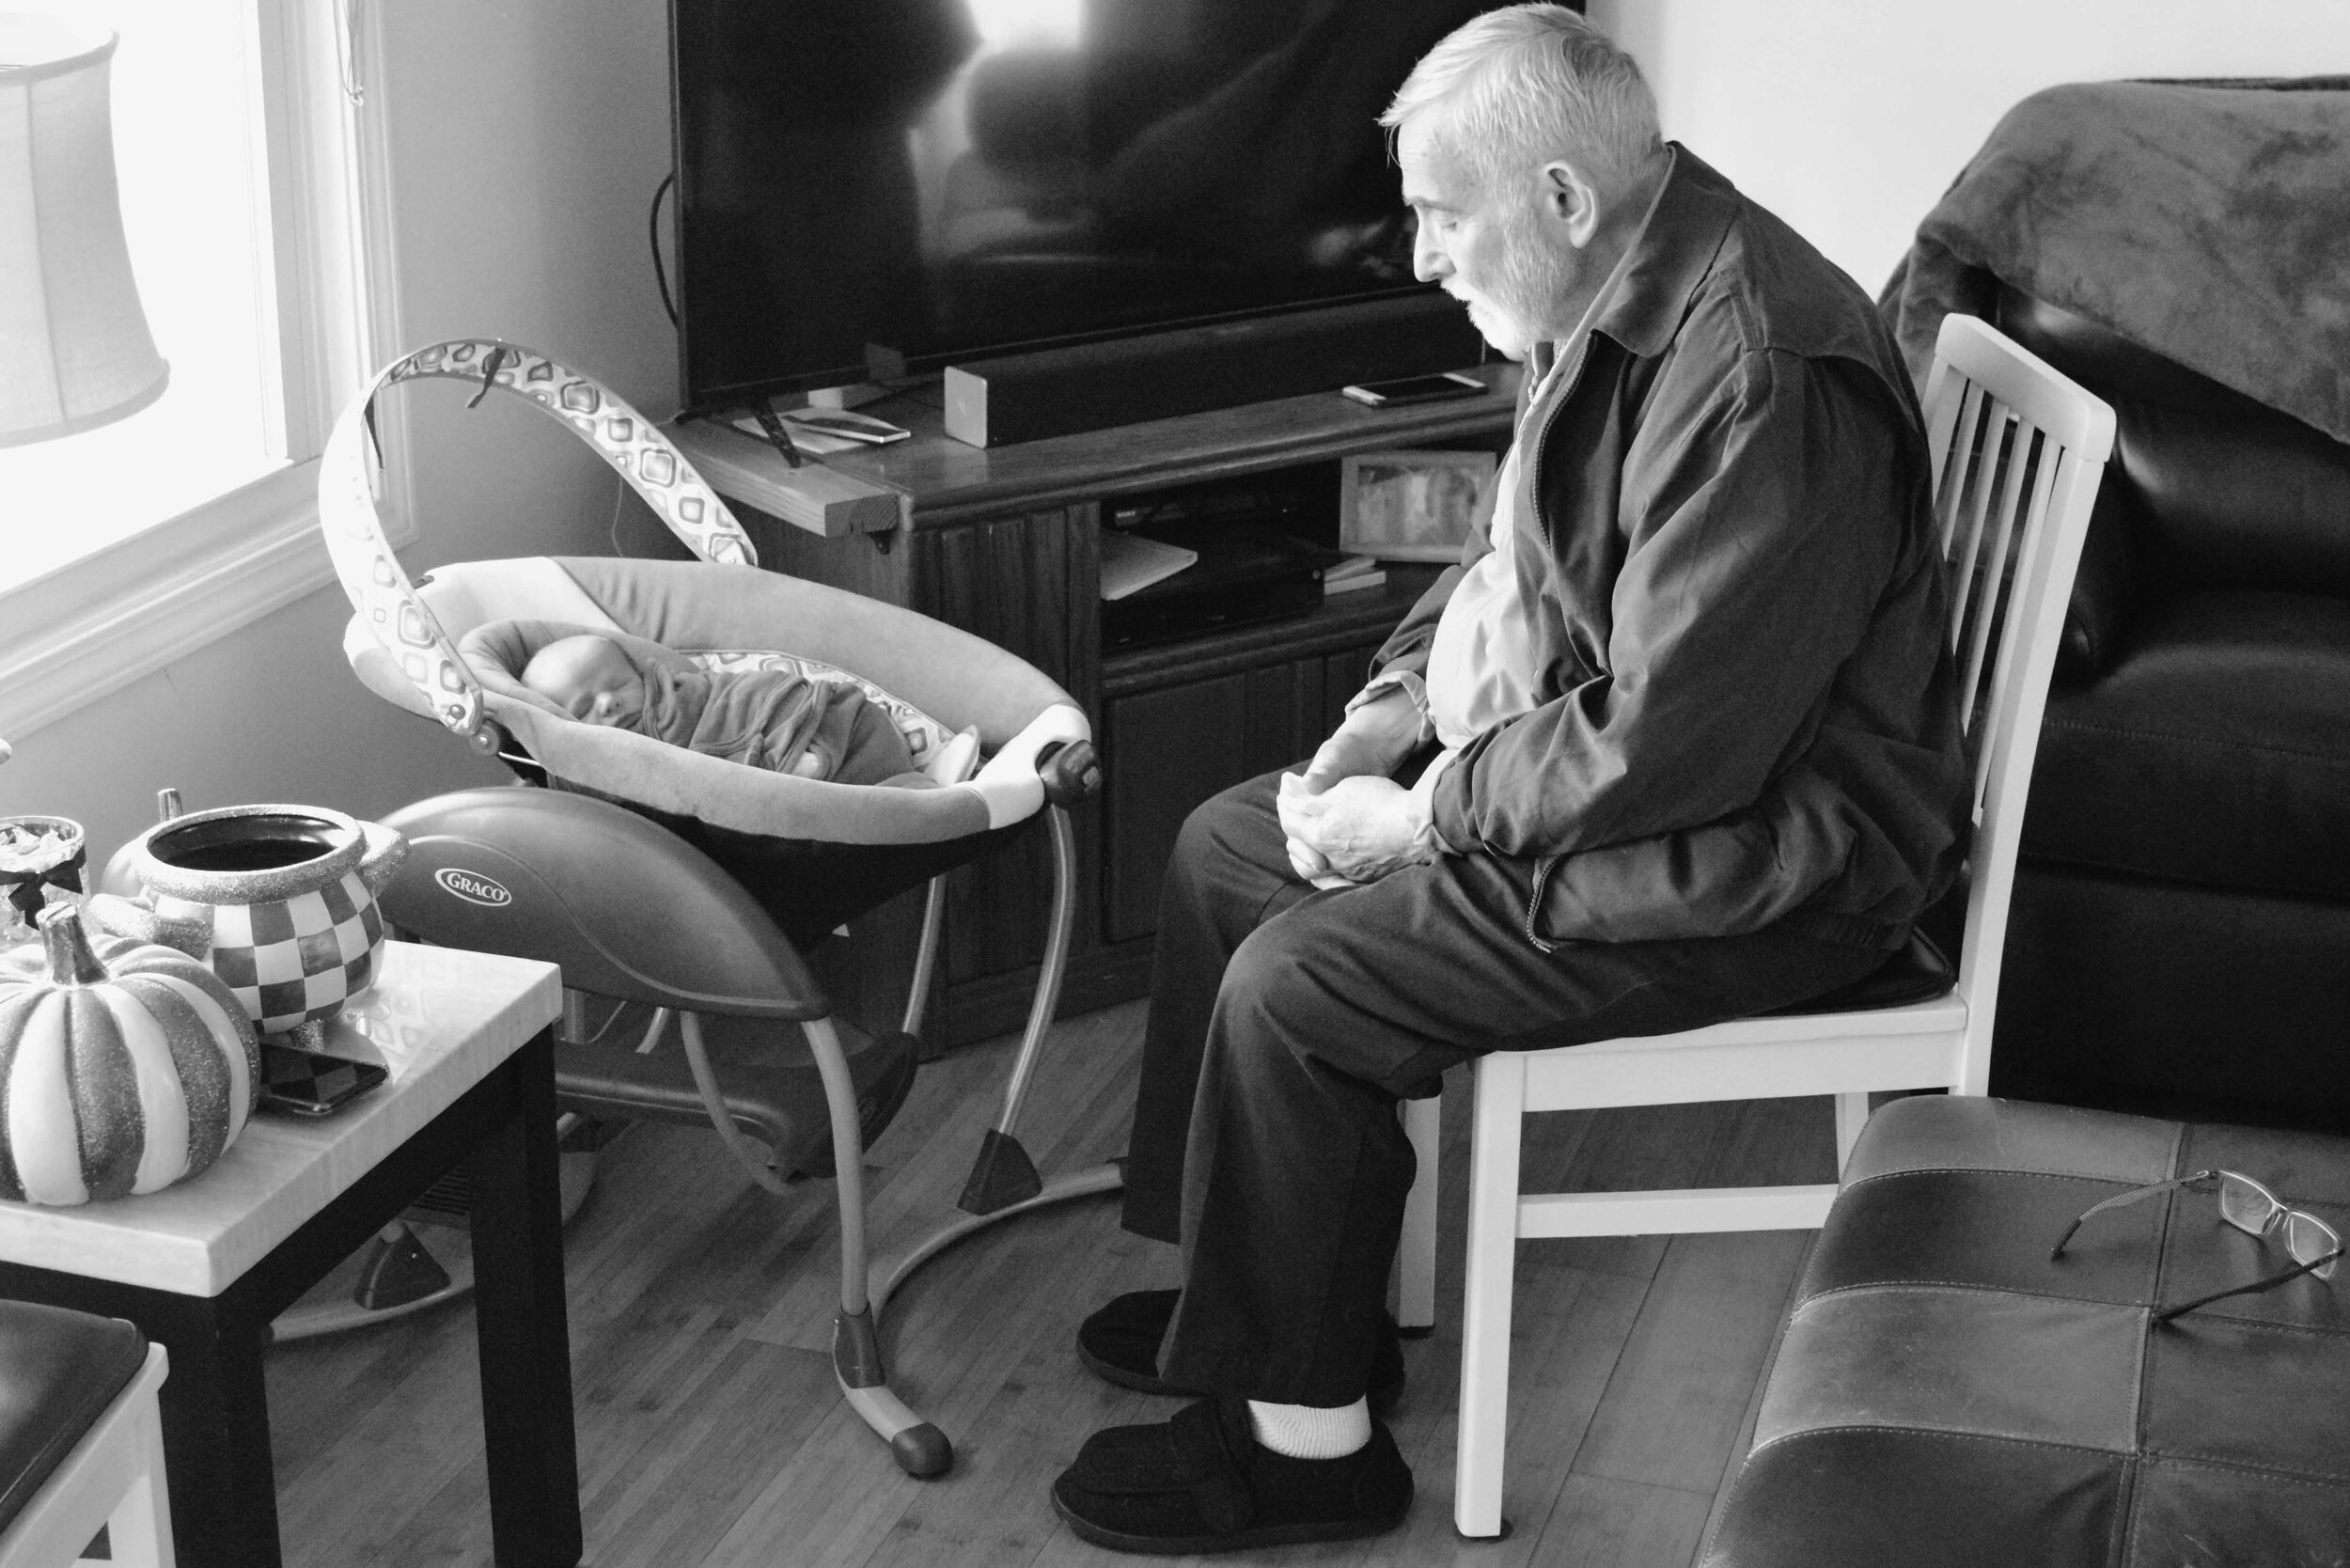 a grandfather sharing a prayer of wisdeom with his new grendson (c) mark somple 2019